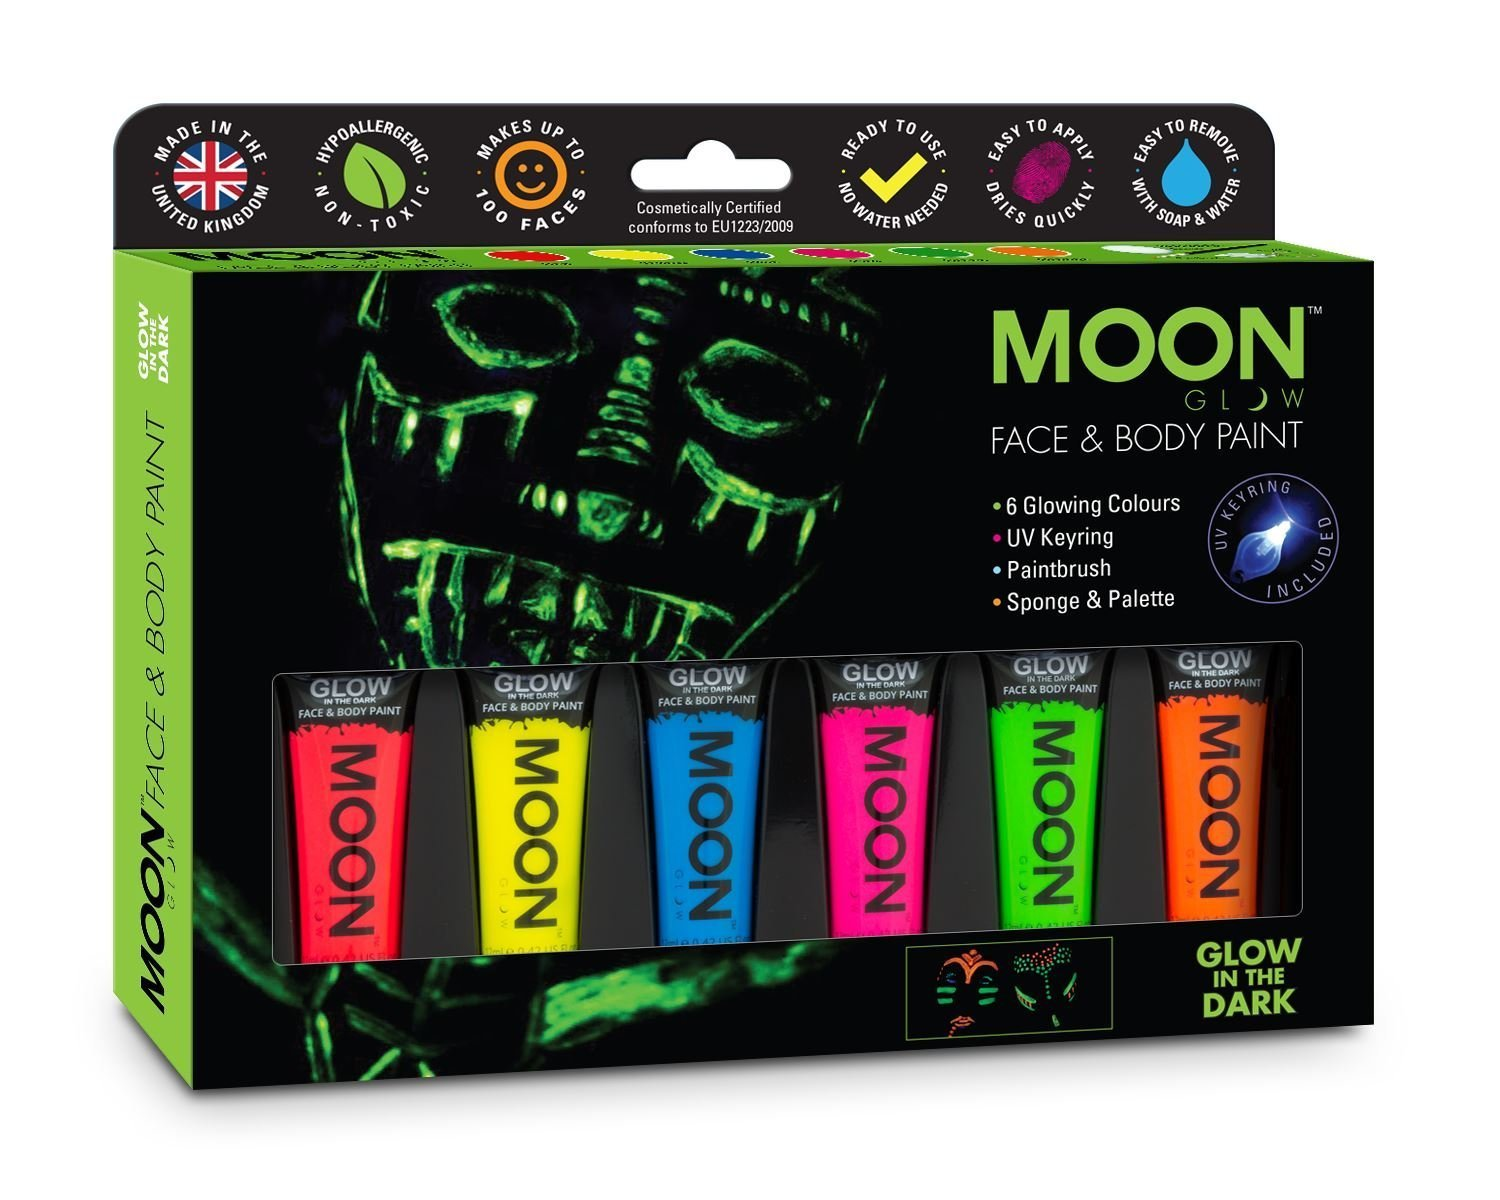 Moon Glow - Glow in the Dark Face and Body Paint Gift Set - includes 6 tubes, UV Keyring, Paintbrush and Sponge